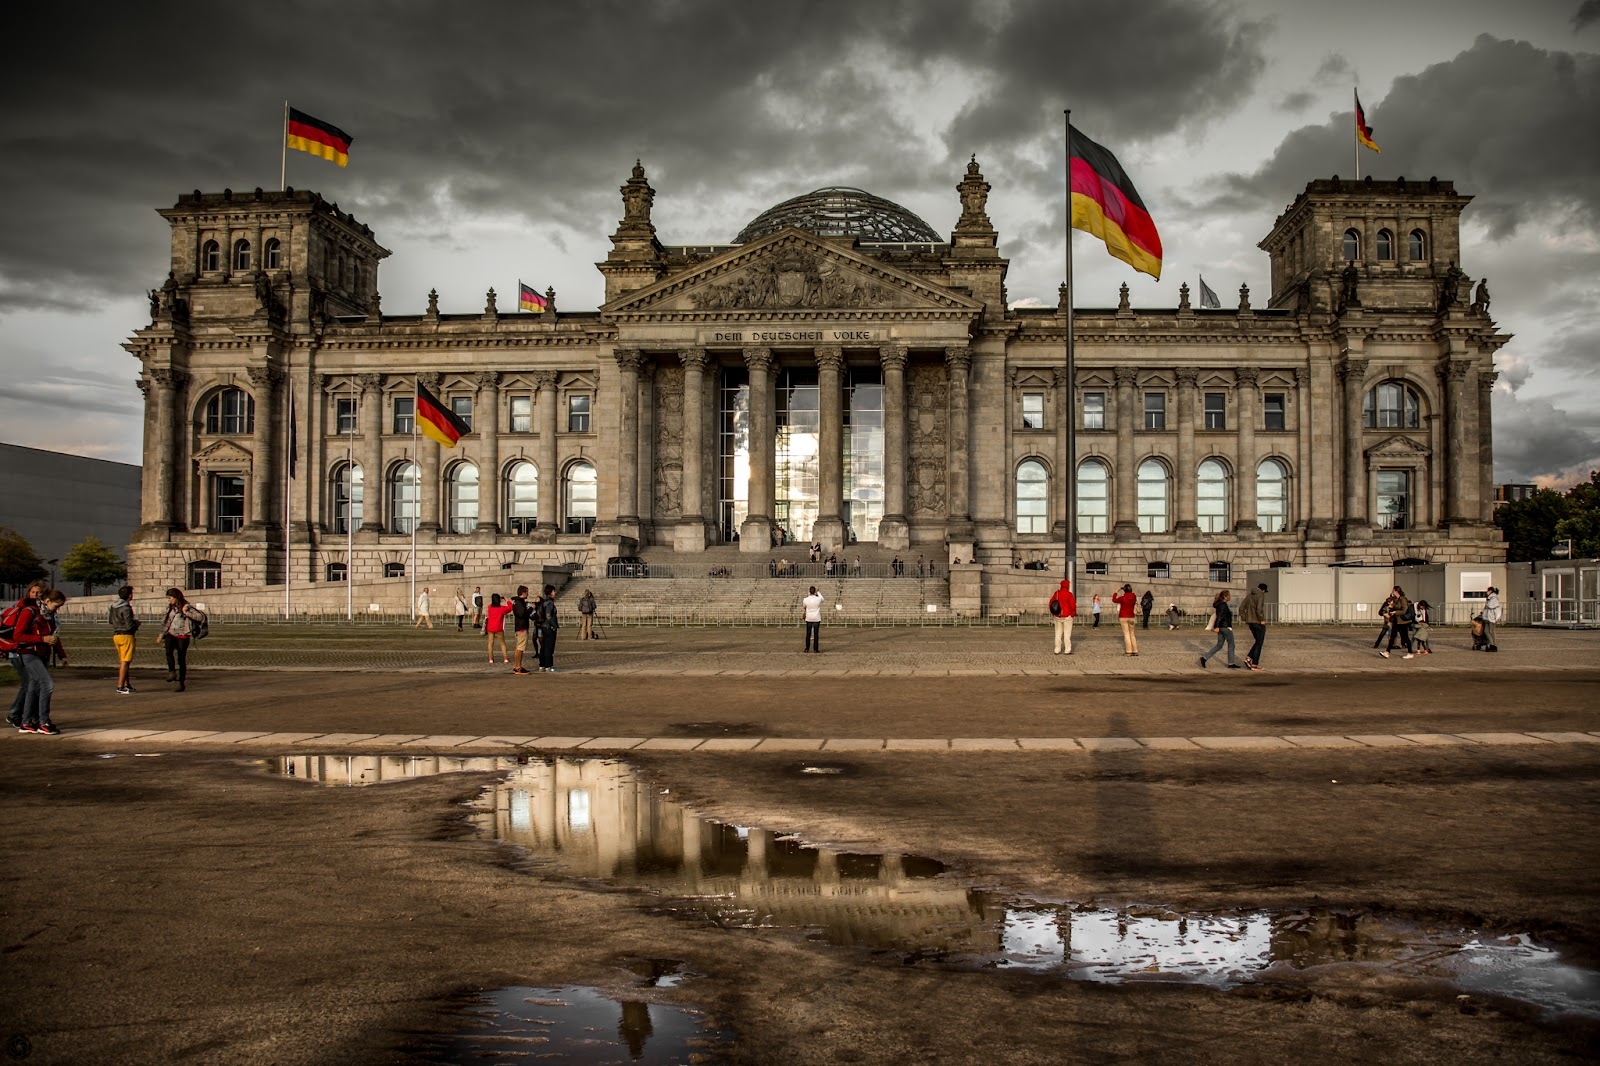 Reichstag 2014 :: Canon EOS5D MkIII | ISO100 | Canon24-105 @24mm | f/4.5 | 1/200s